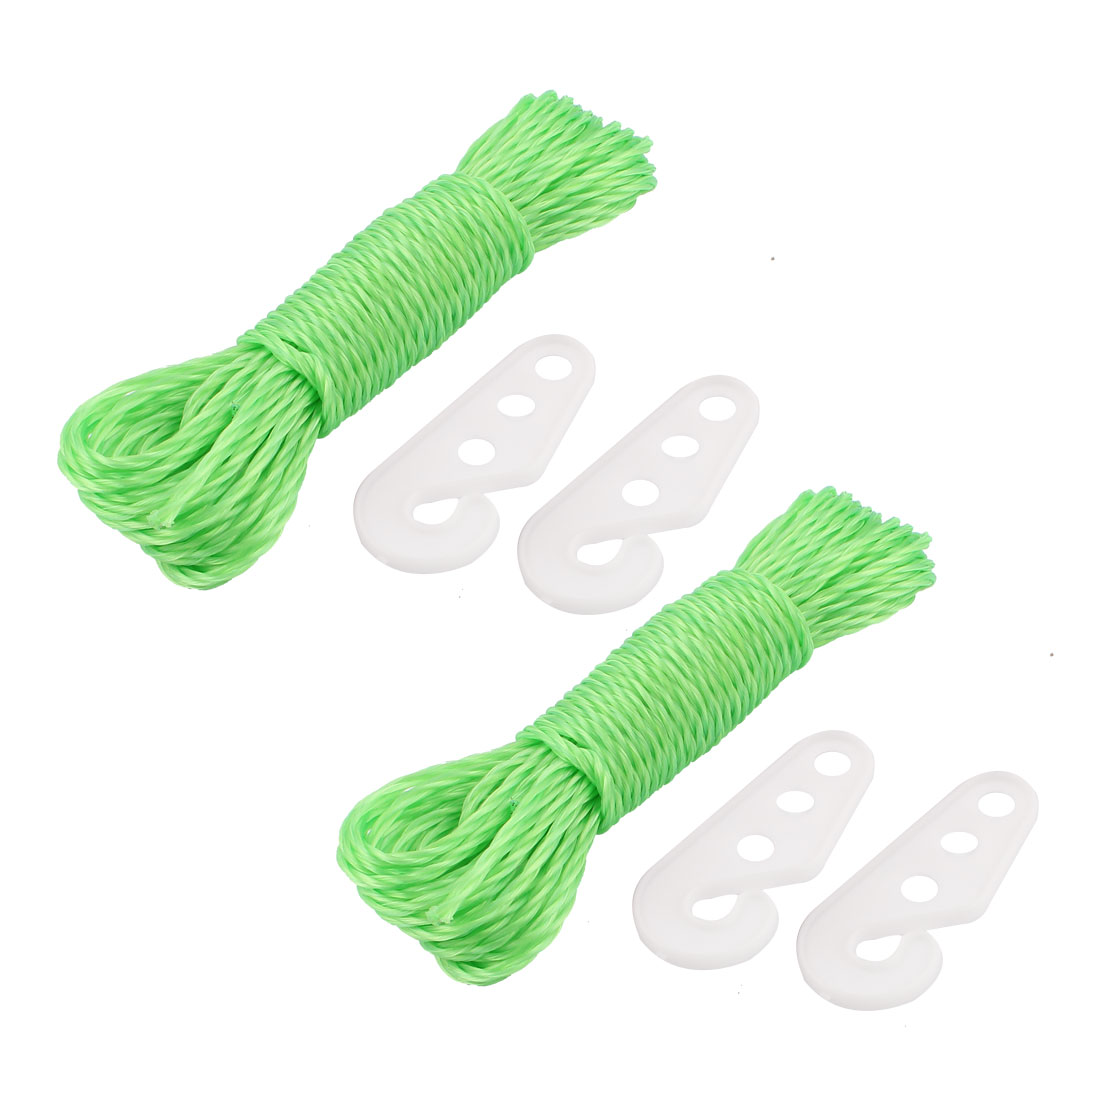 Camping Outdoor Laundry Nylon Clothesline Clothes Towels Hanging Line Rope String w Hooks 33Ft Green 2pcs